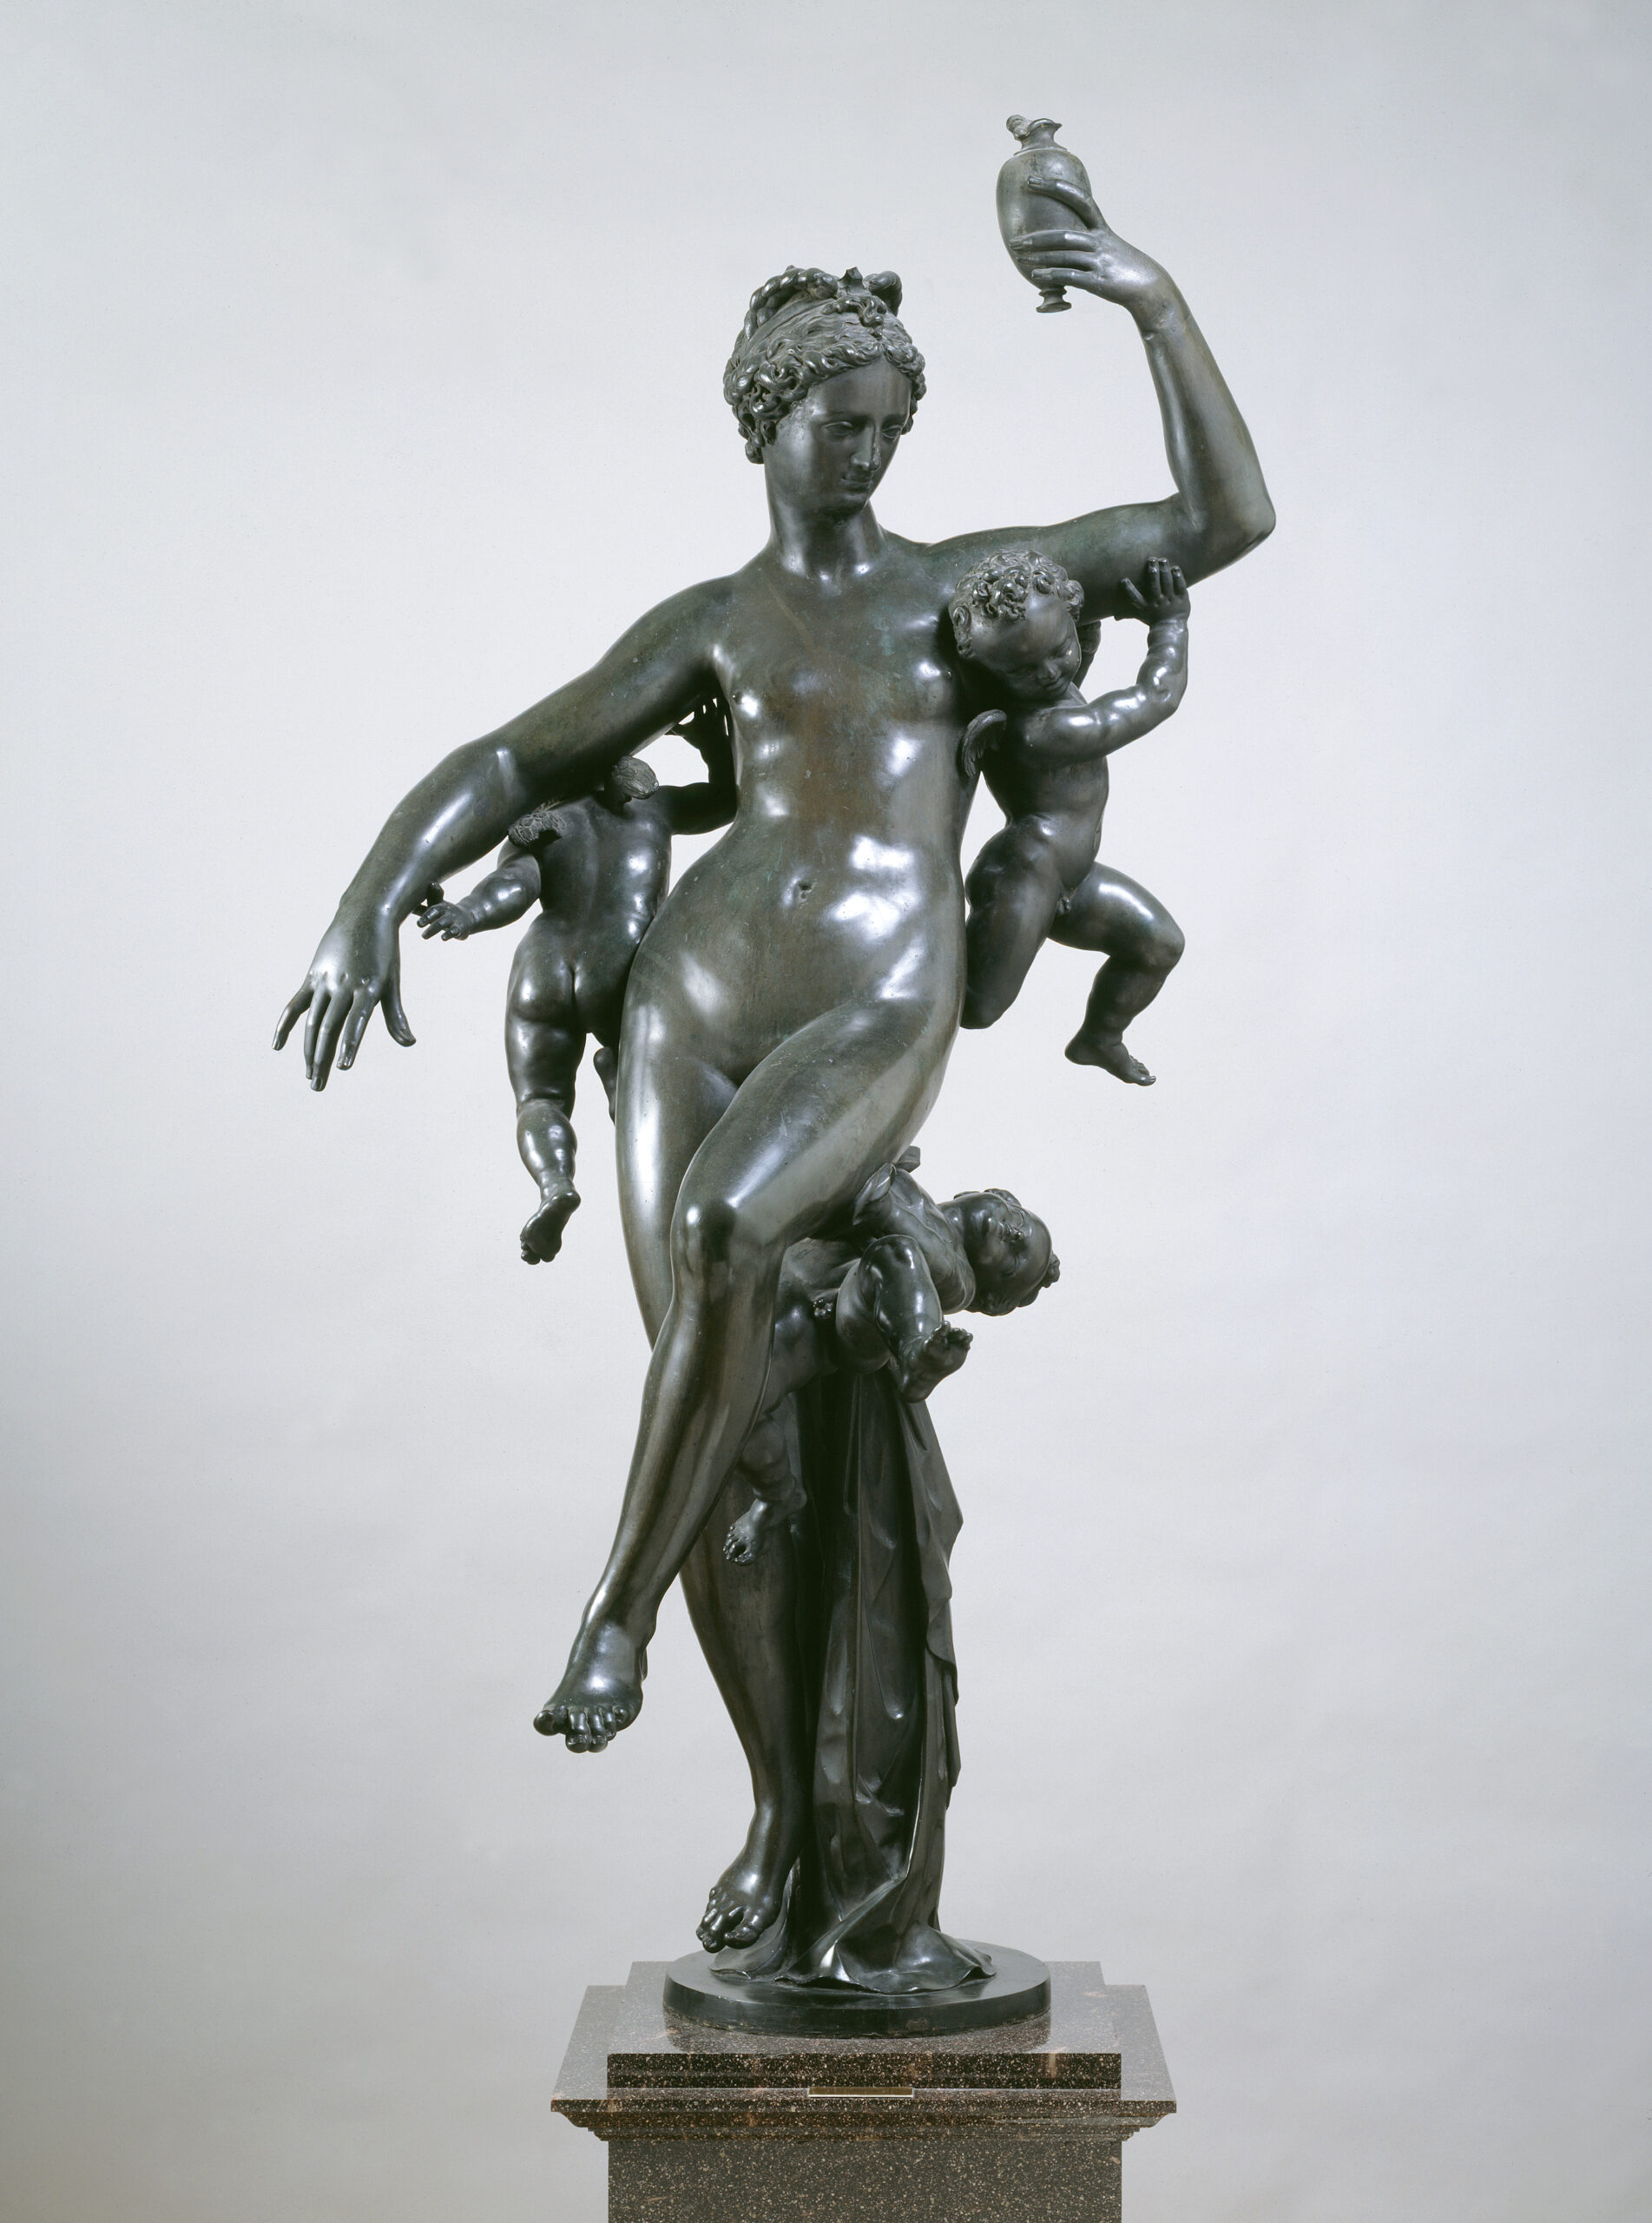 Adriaen de Vries (ca. 1556-1626), Psyche Carried by Cupids, 1590-1592 Photo: Hans Thorwid, Nationalmuseum